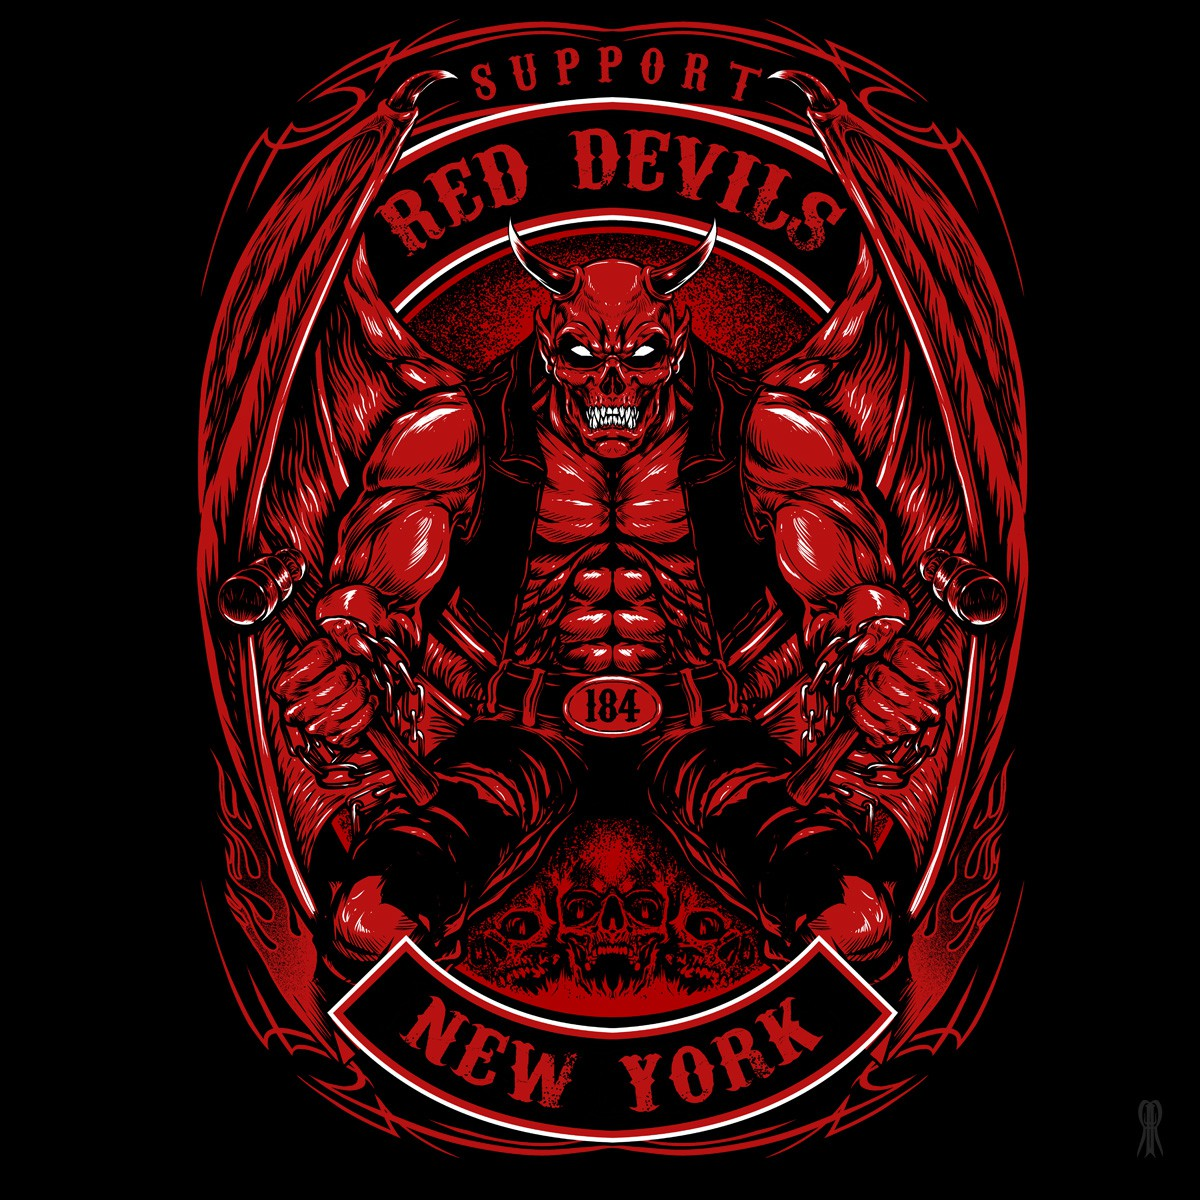 Red Devils Motorcycle Club T-Shirt Design (HARDCORE!)